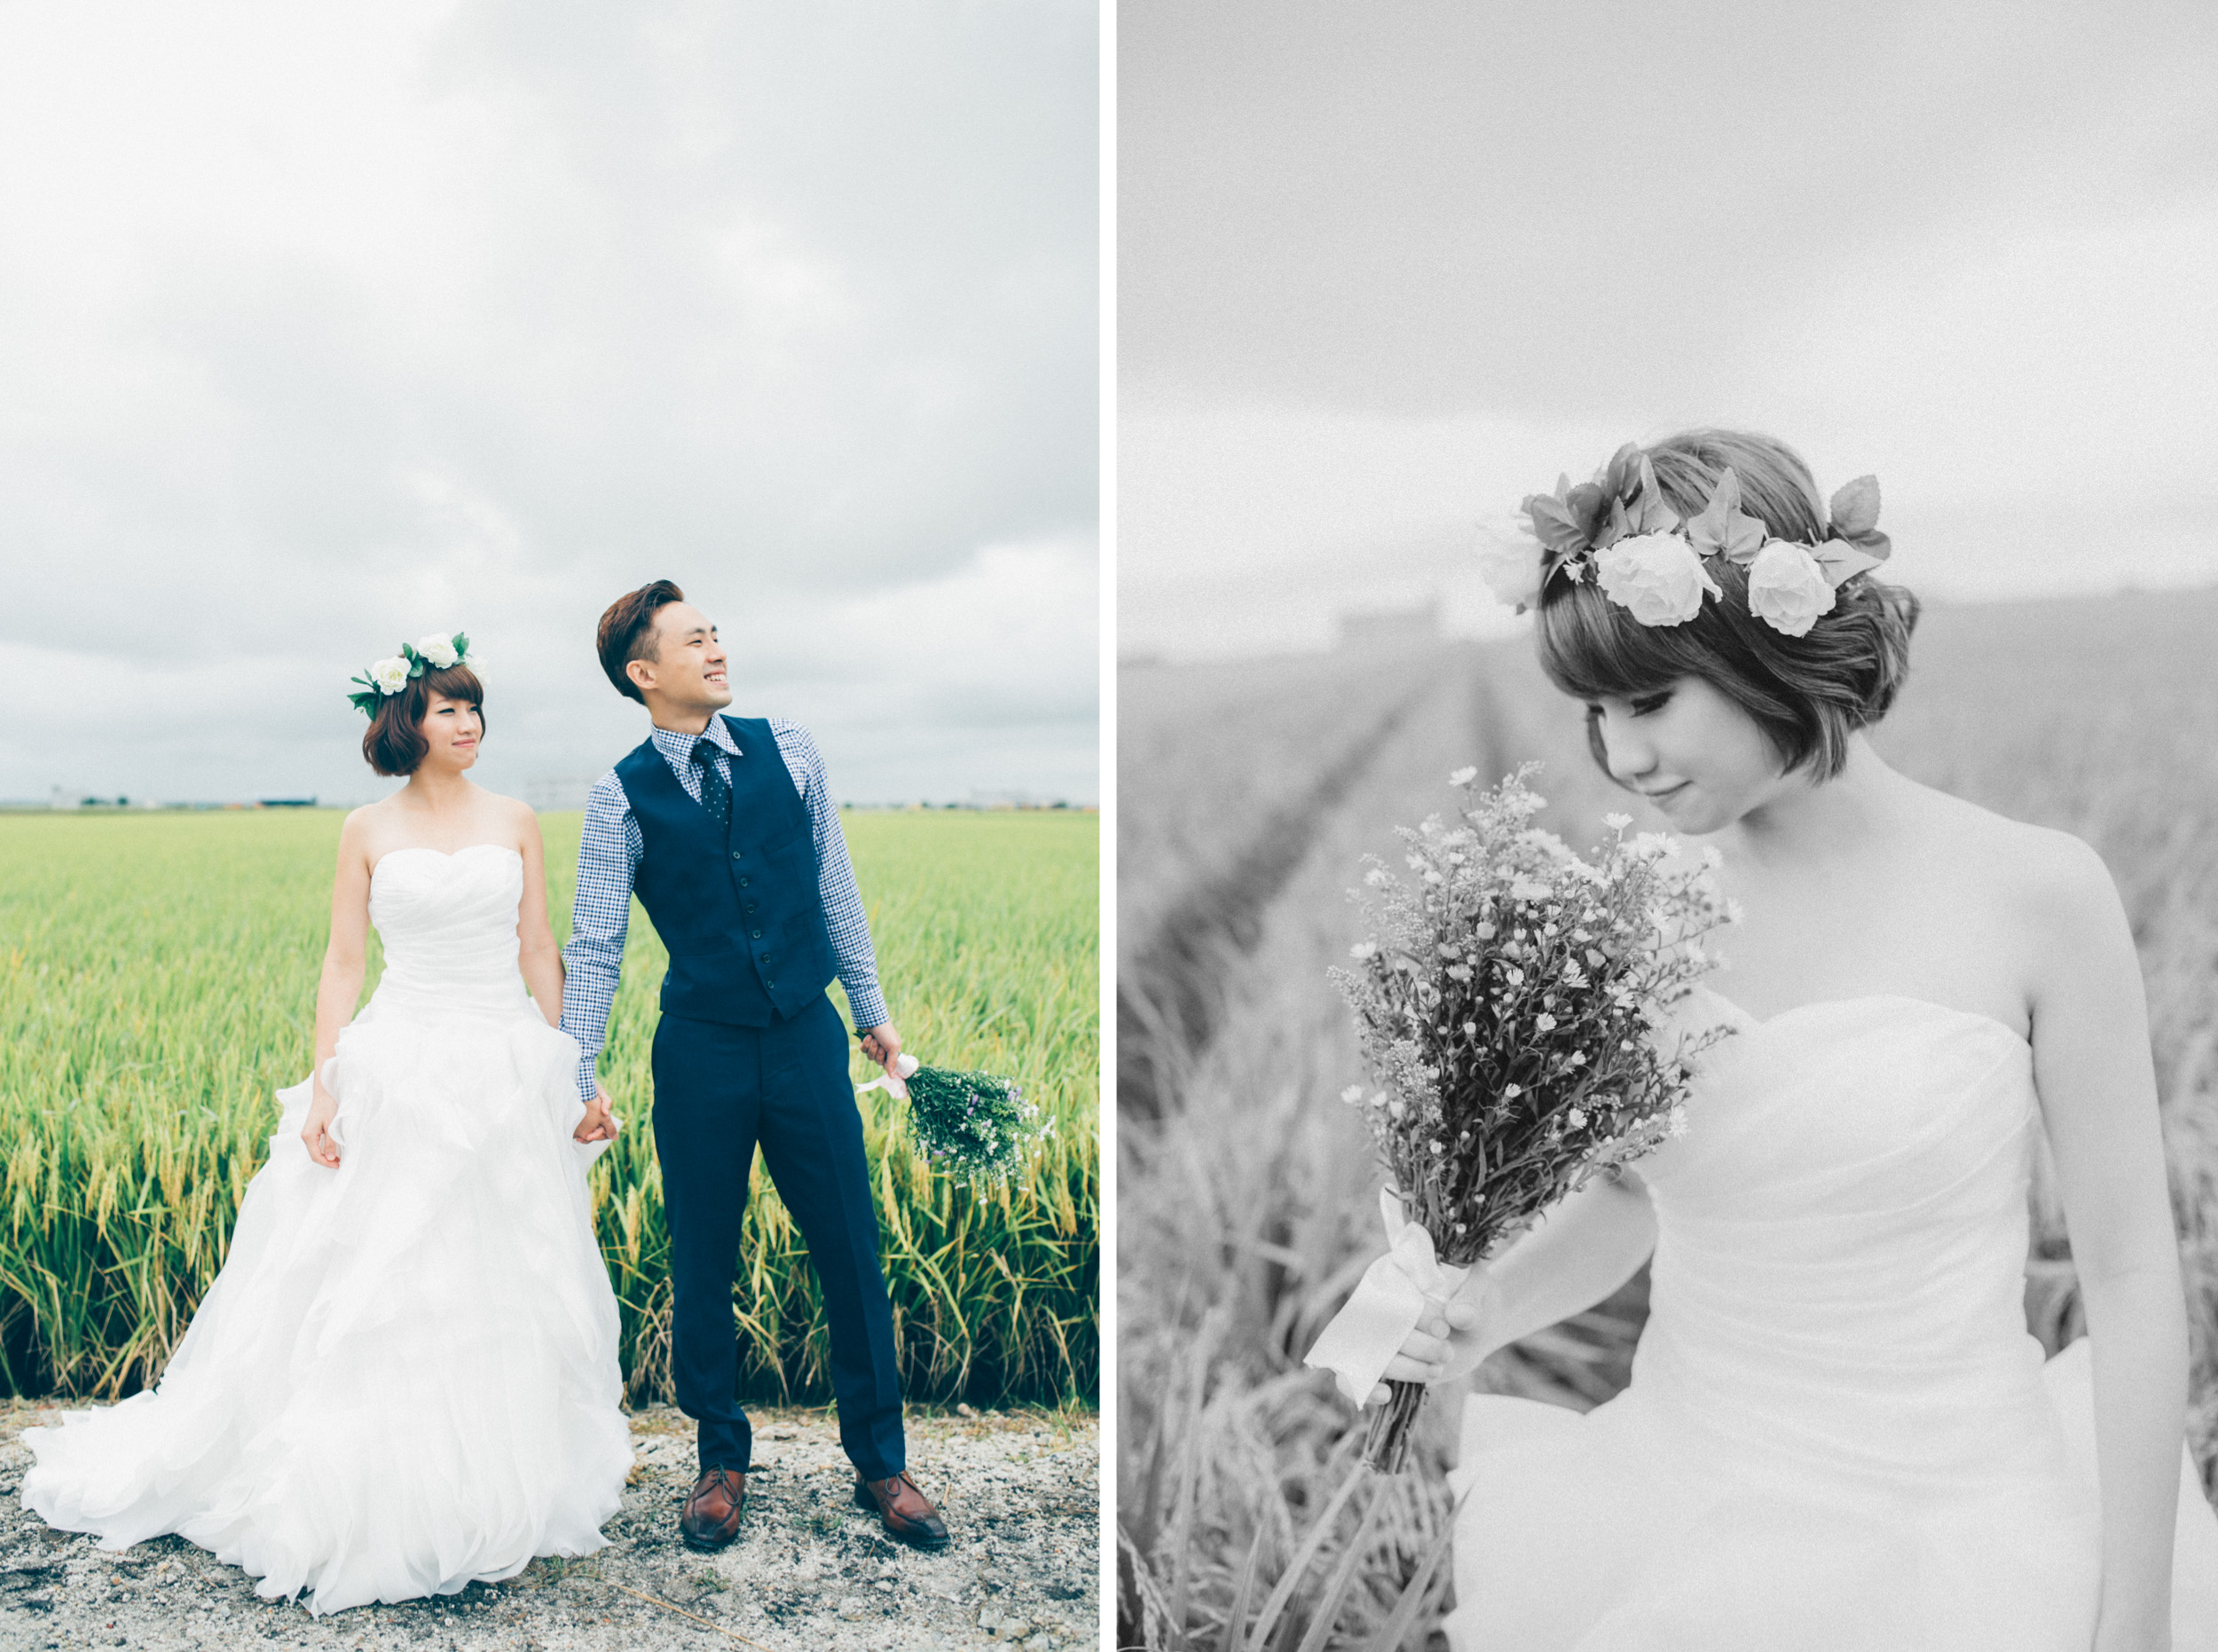 16-hellojanelee-singapore-malaysia-wedding-photographer-prewedding-carrie-sekinchan